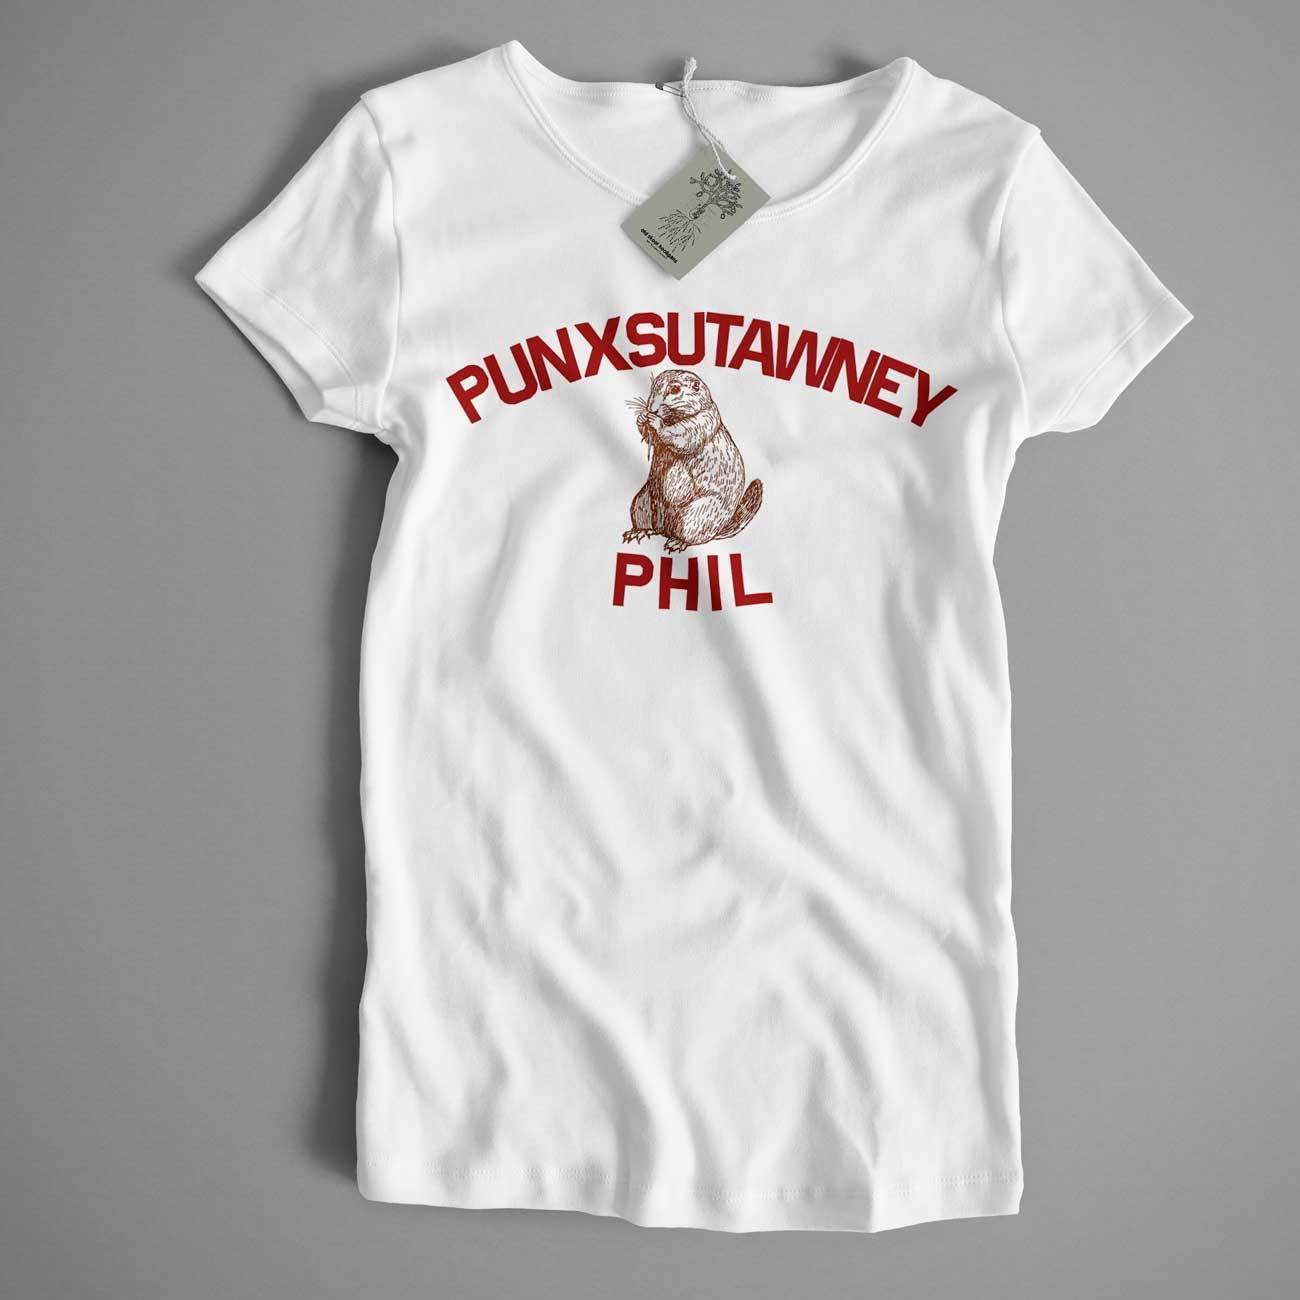 As Worn In Groundhog Day T Shirt Punxsutawney Phil Cult Movie Comedy T Shirt